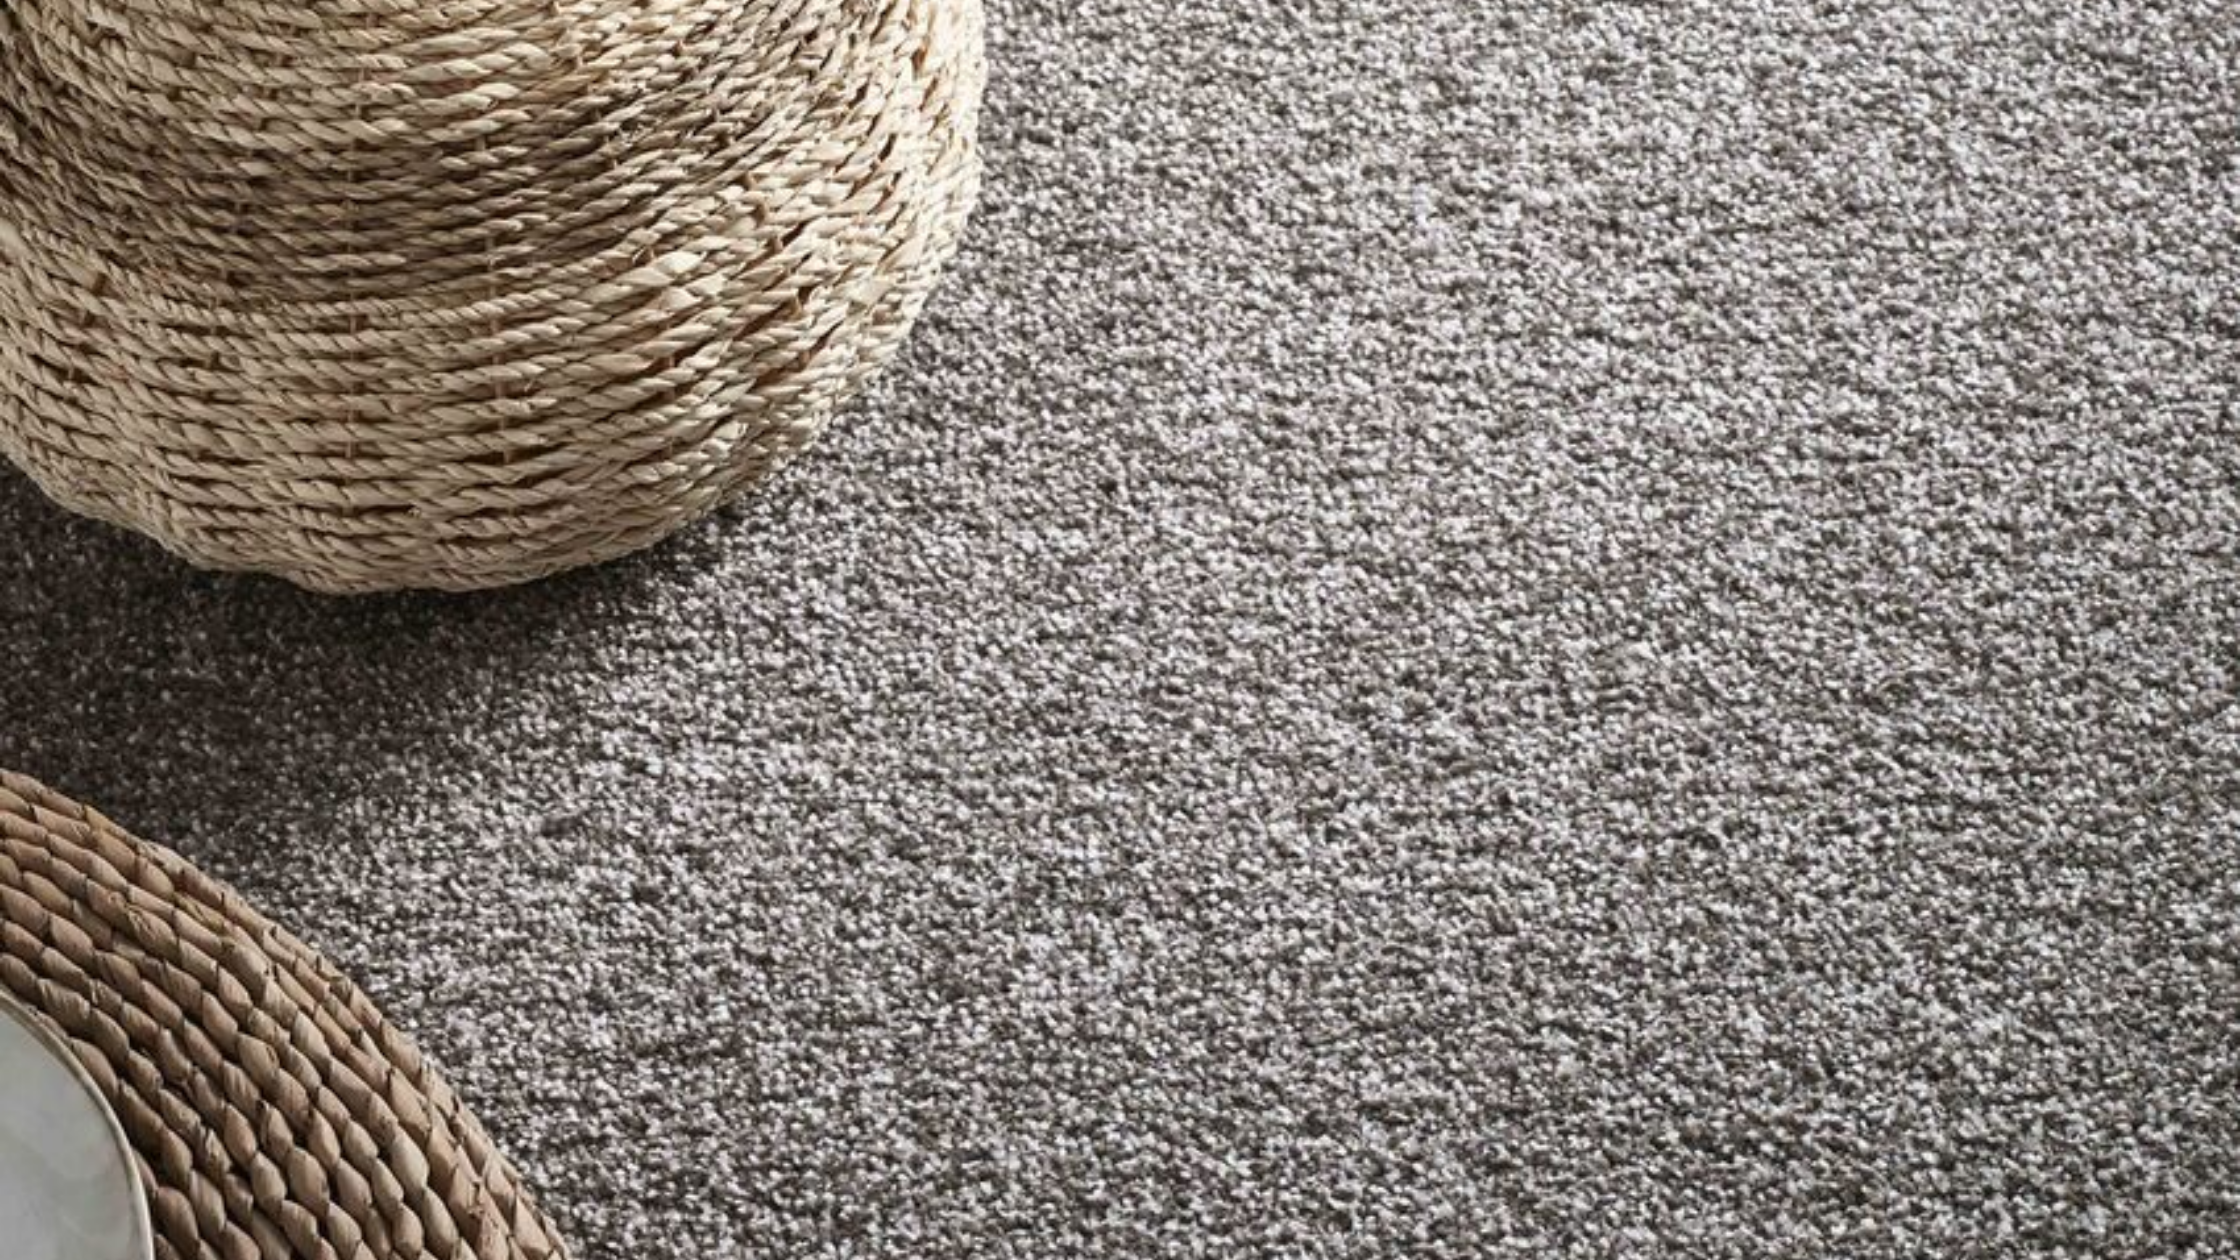 Classification of Carpets Based on Material